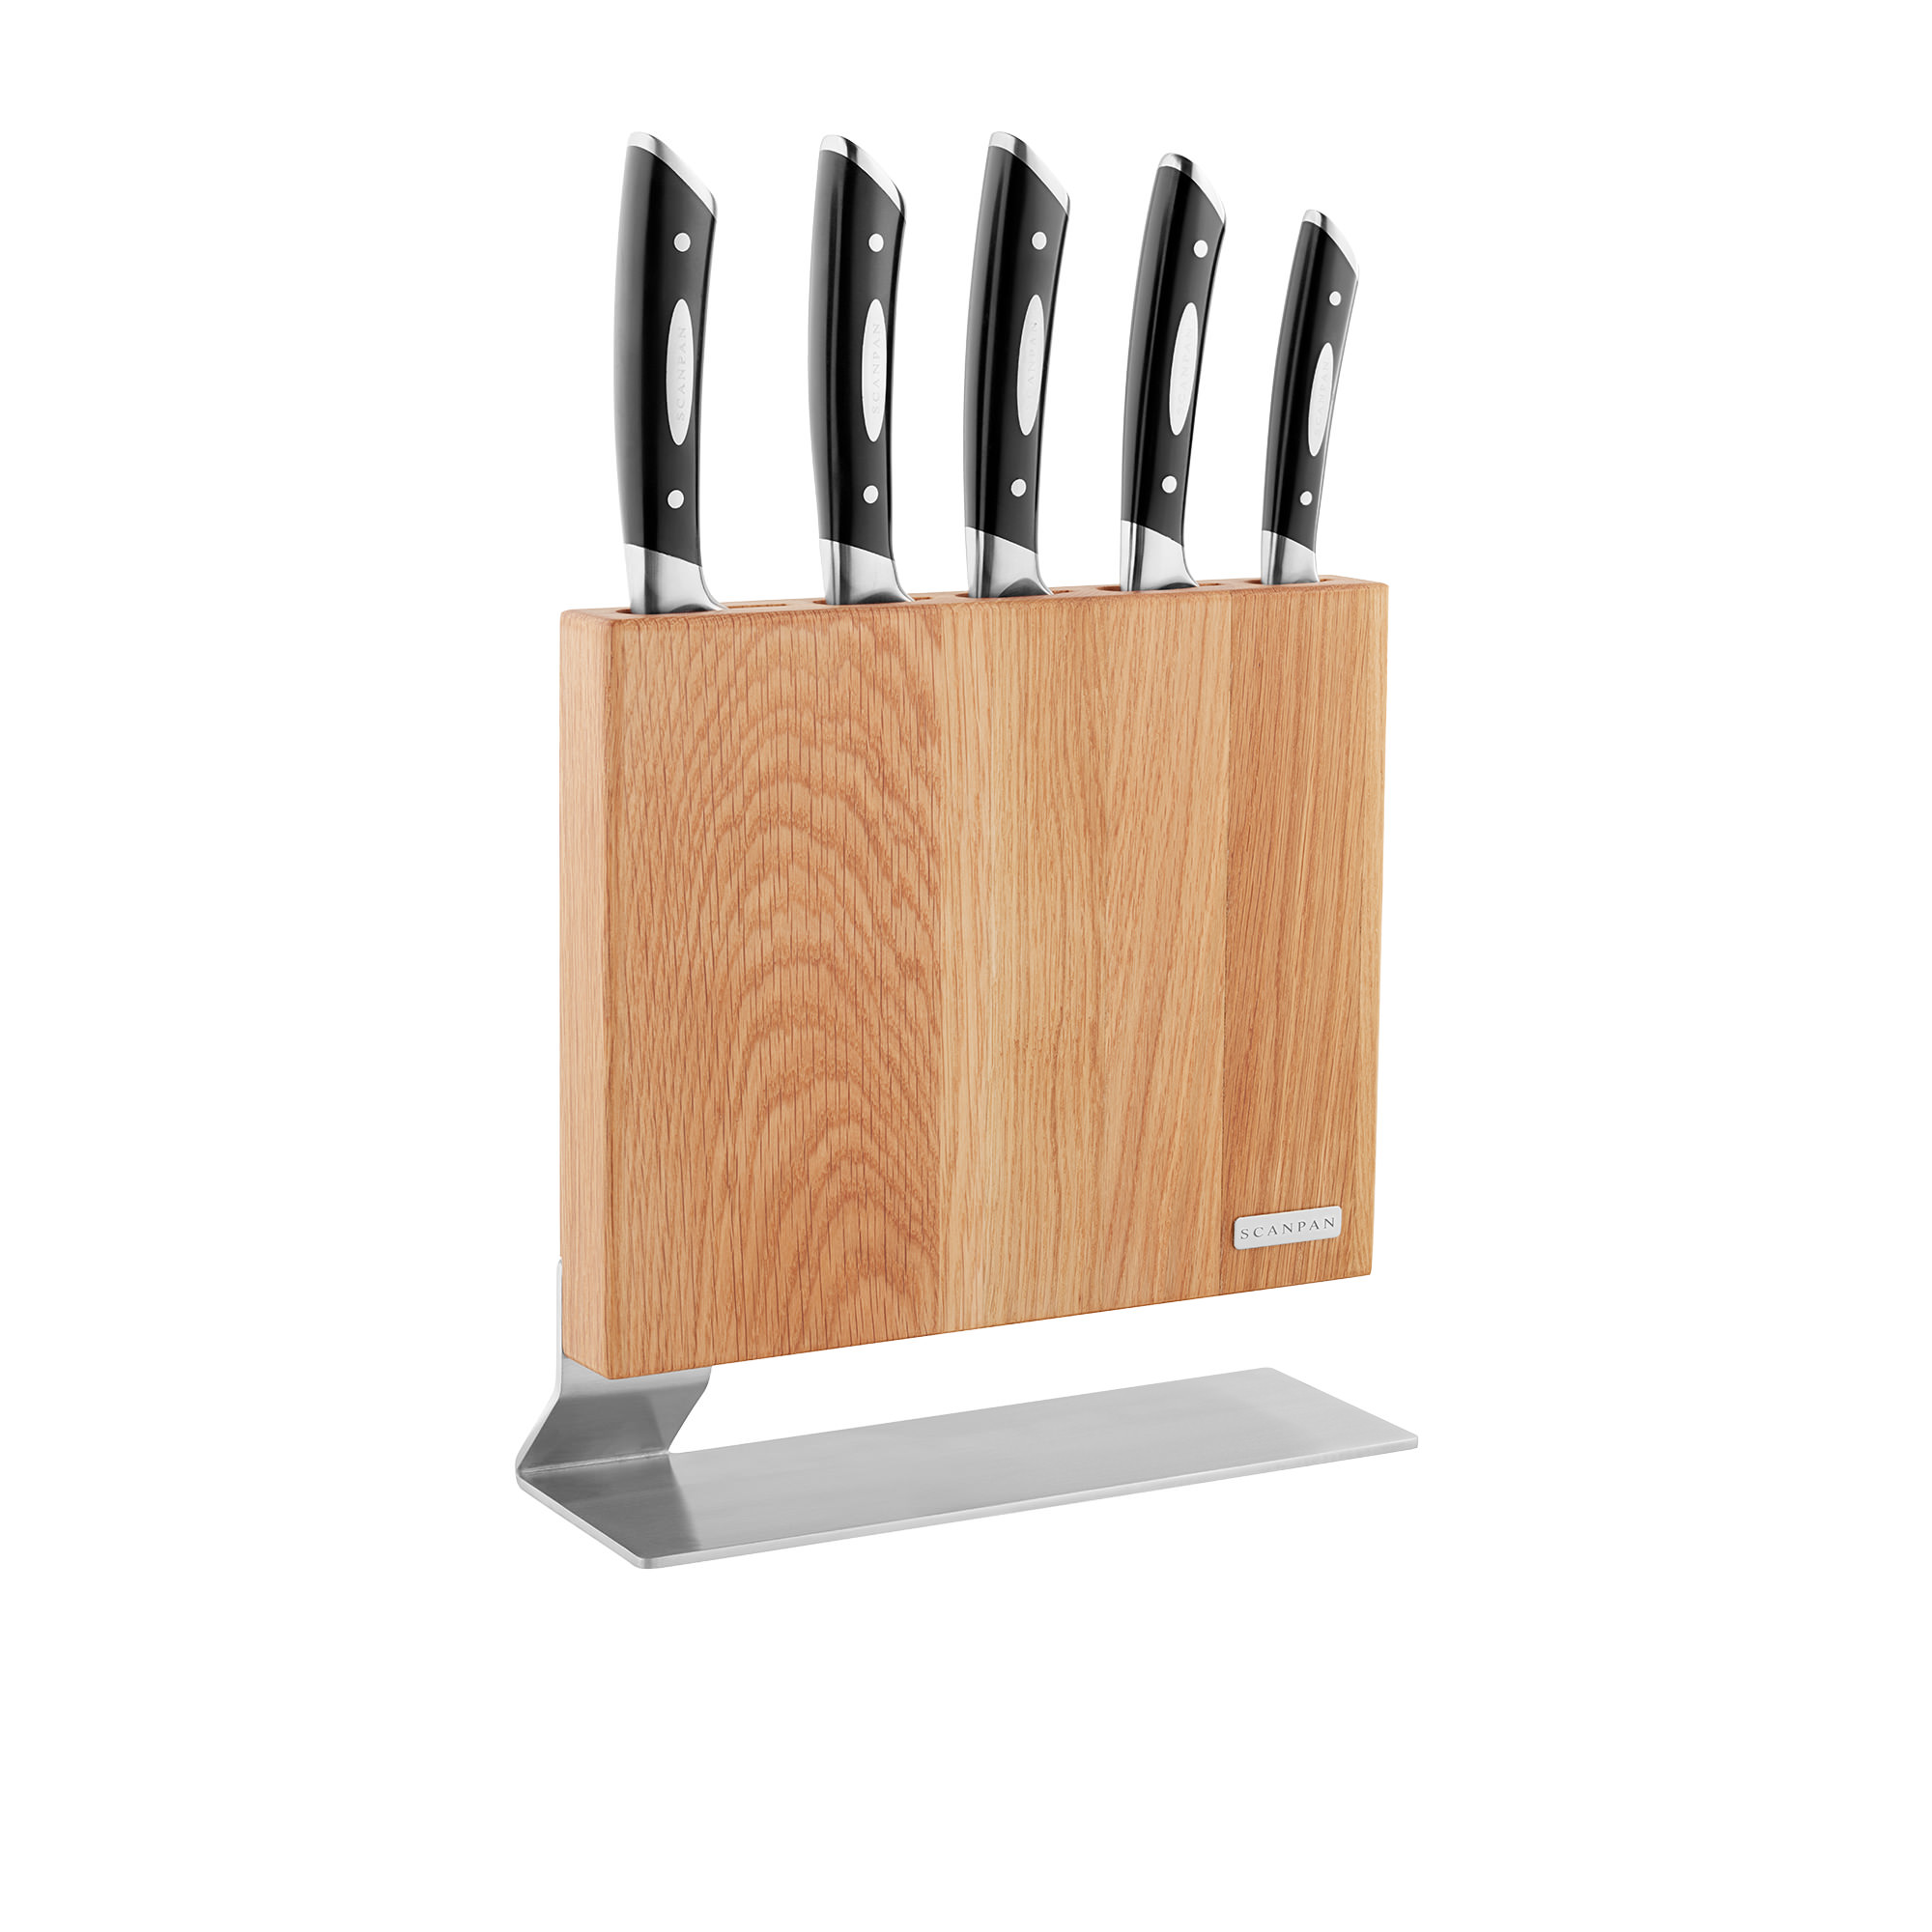 Scanpan Classic Kattegat 6 Piece Knife Block Set